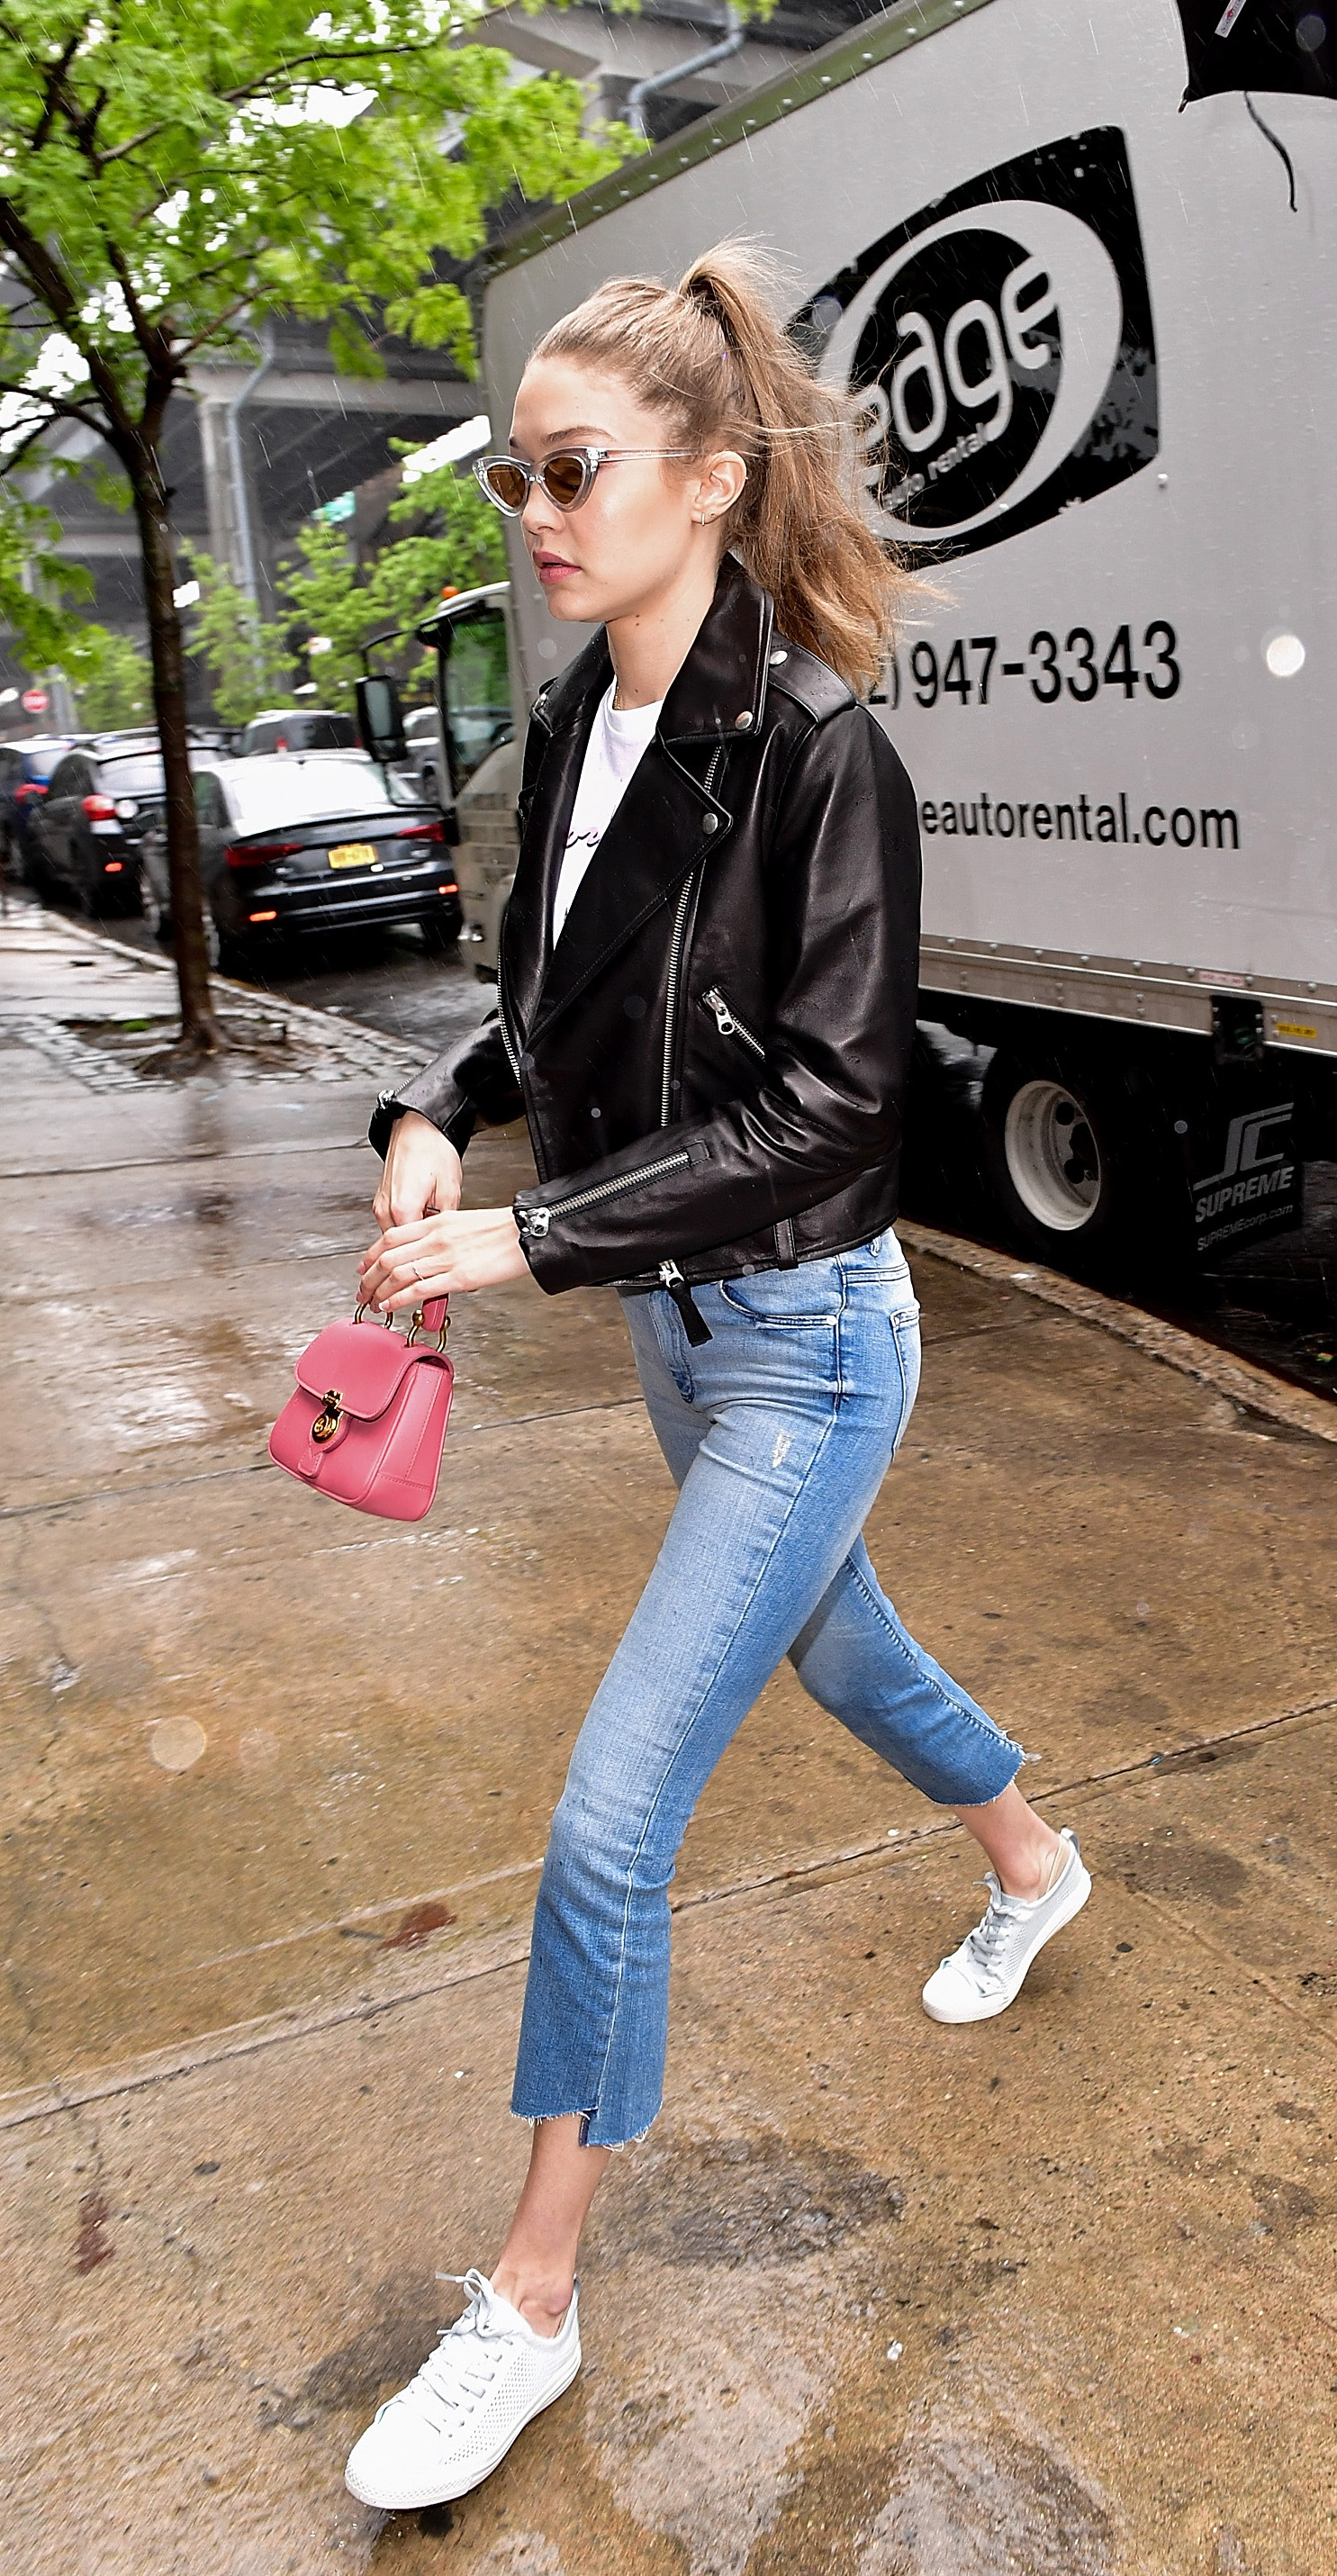 NEW YORK, NY - MAY 13:  (EXCLUSIVE COVERAGE)  Gigi Hadid seen on the streets of Brooklyn on May 13, 2017 in New York City.  (Photo by James Devaney/GC Images)